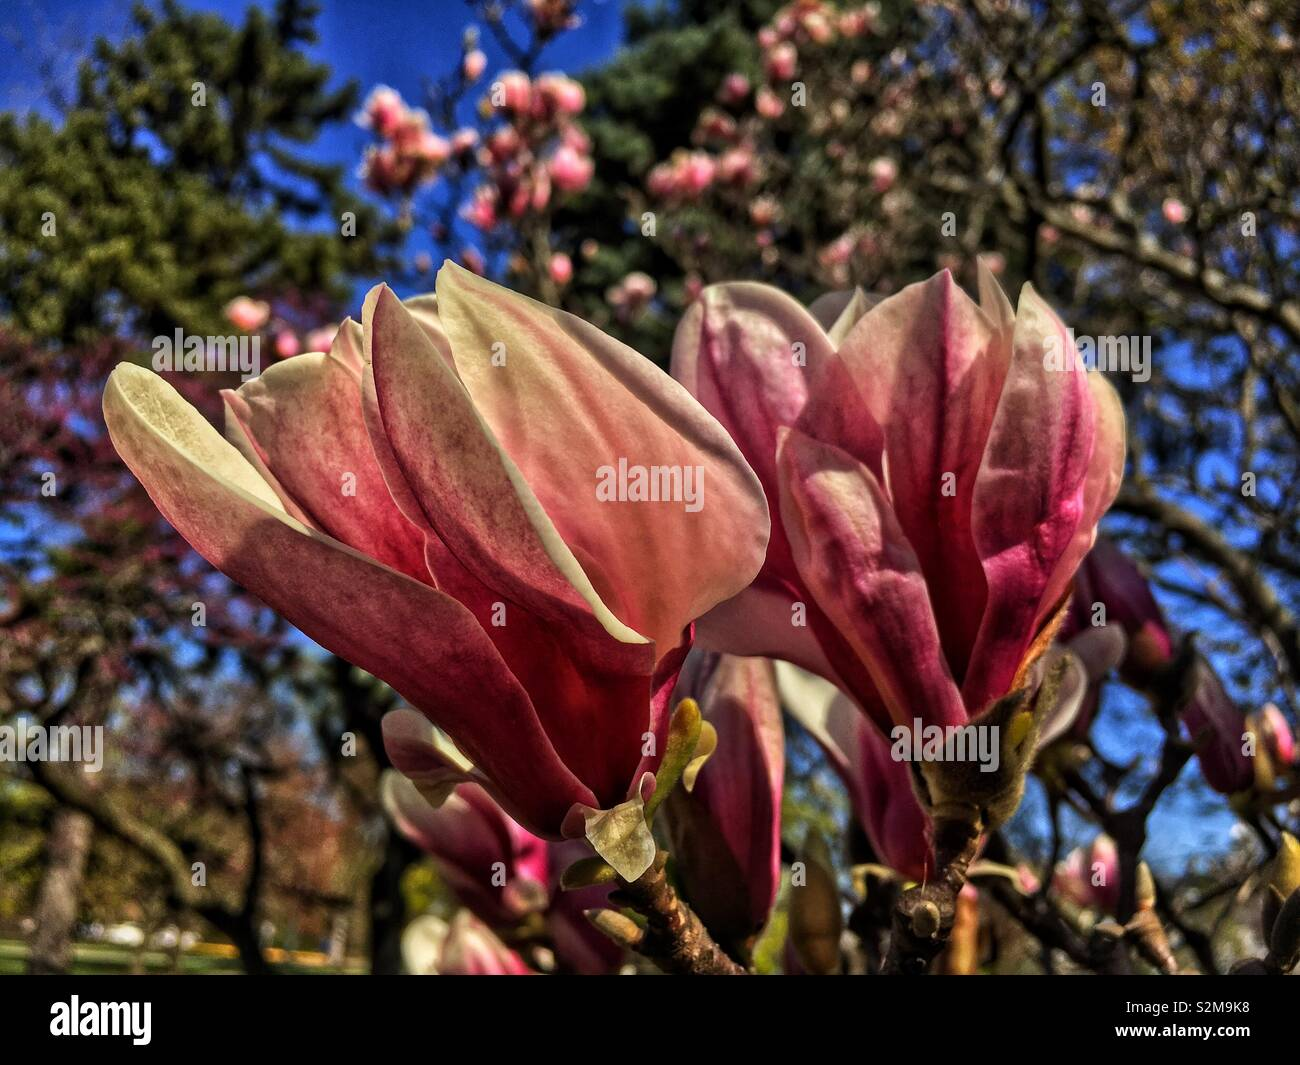 Huge Showy Beautiful Pink And White Magnolia Flower Stock Photo